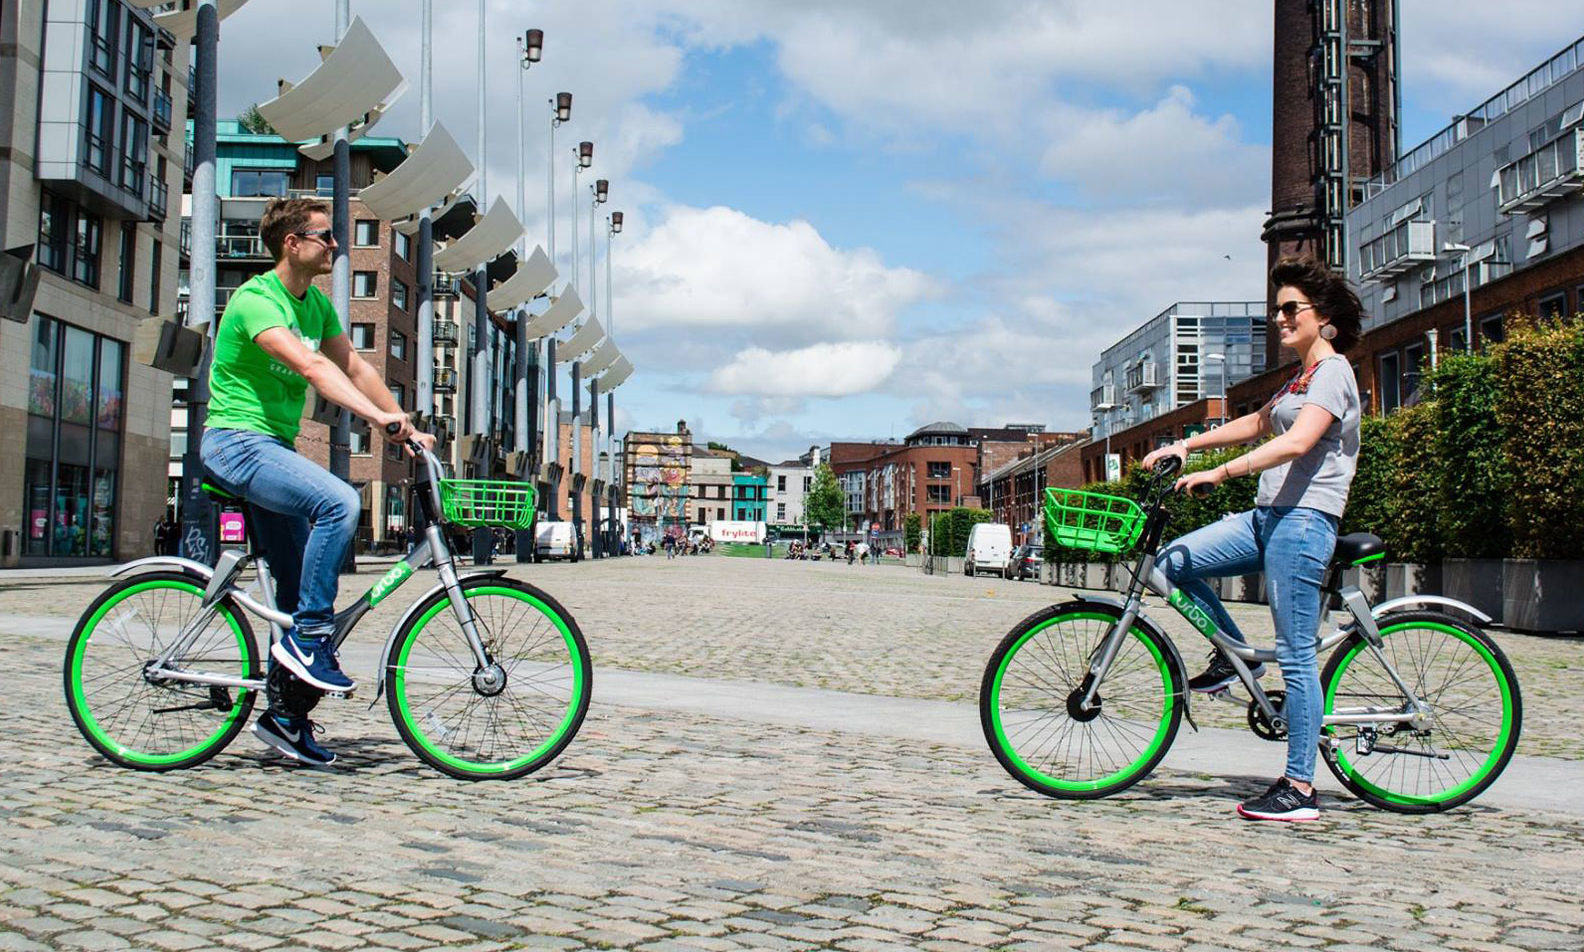 An Urbo bike hire scheme is coming to Dundee.